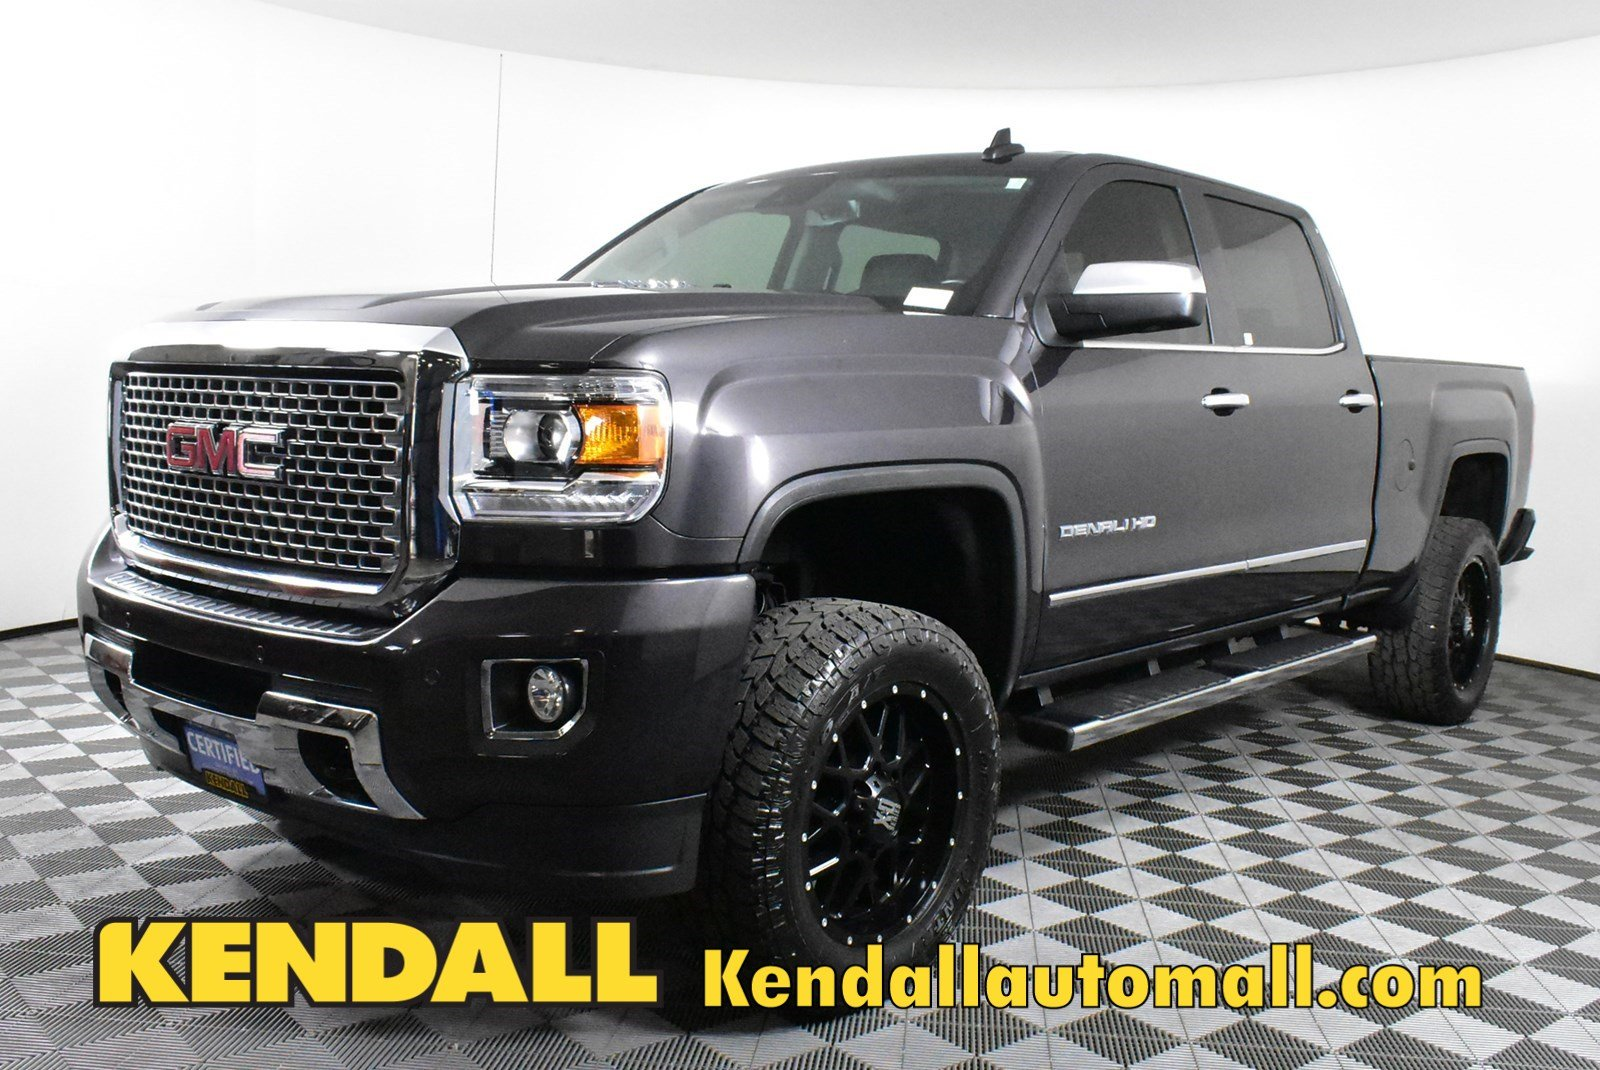 Certified Pre-Owned 2016 GMC Sierra 2500HD Denali4WD